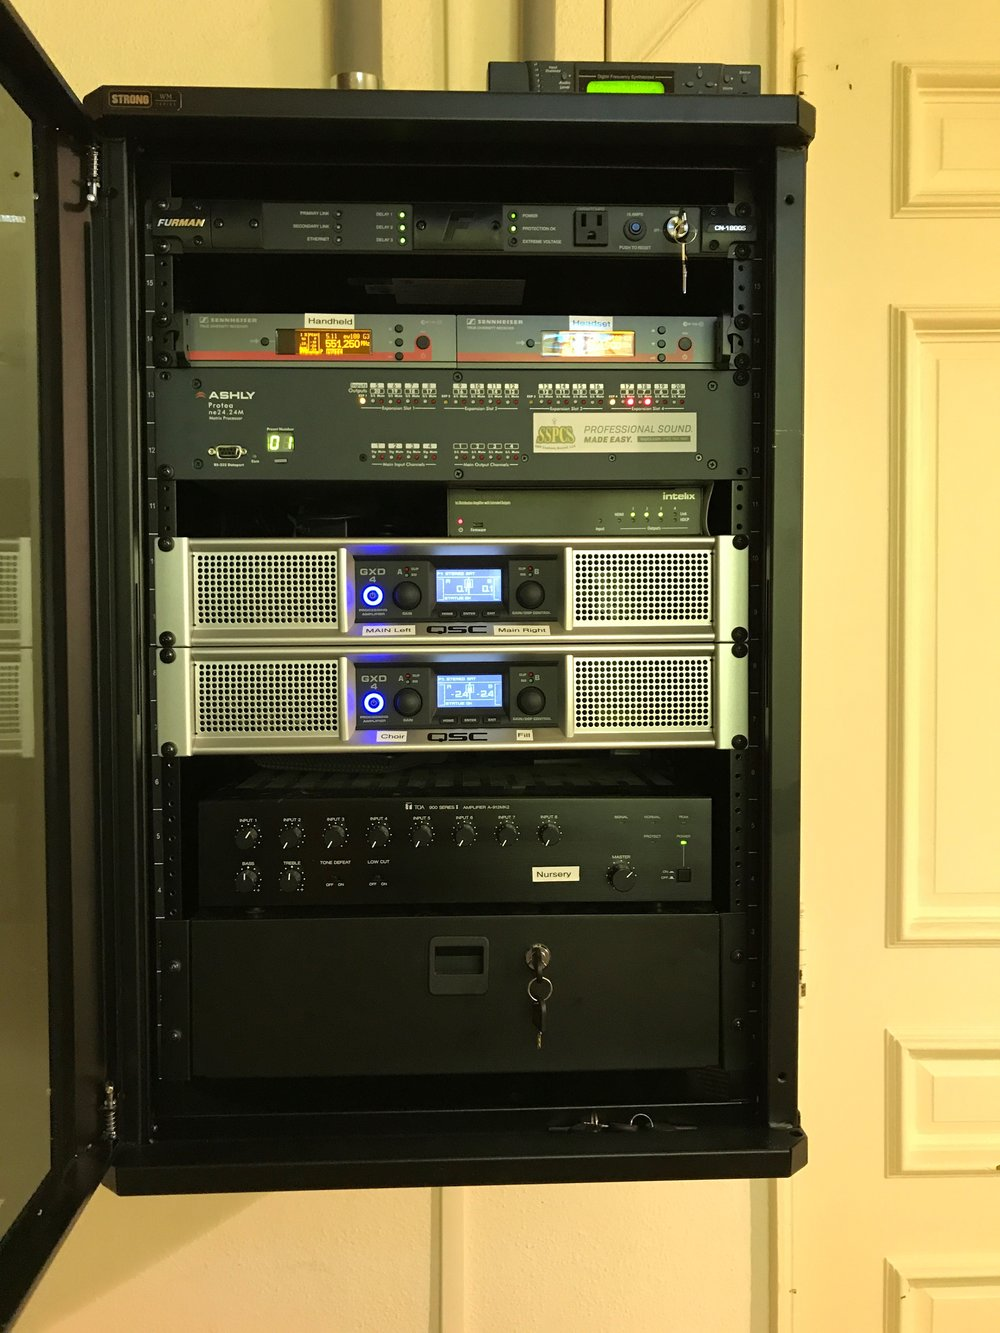 Main A/V Rack with Ashley Processor and Video distribution all controlled by a wall control in the room.